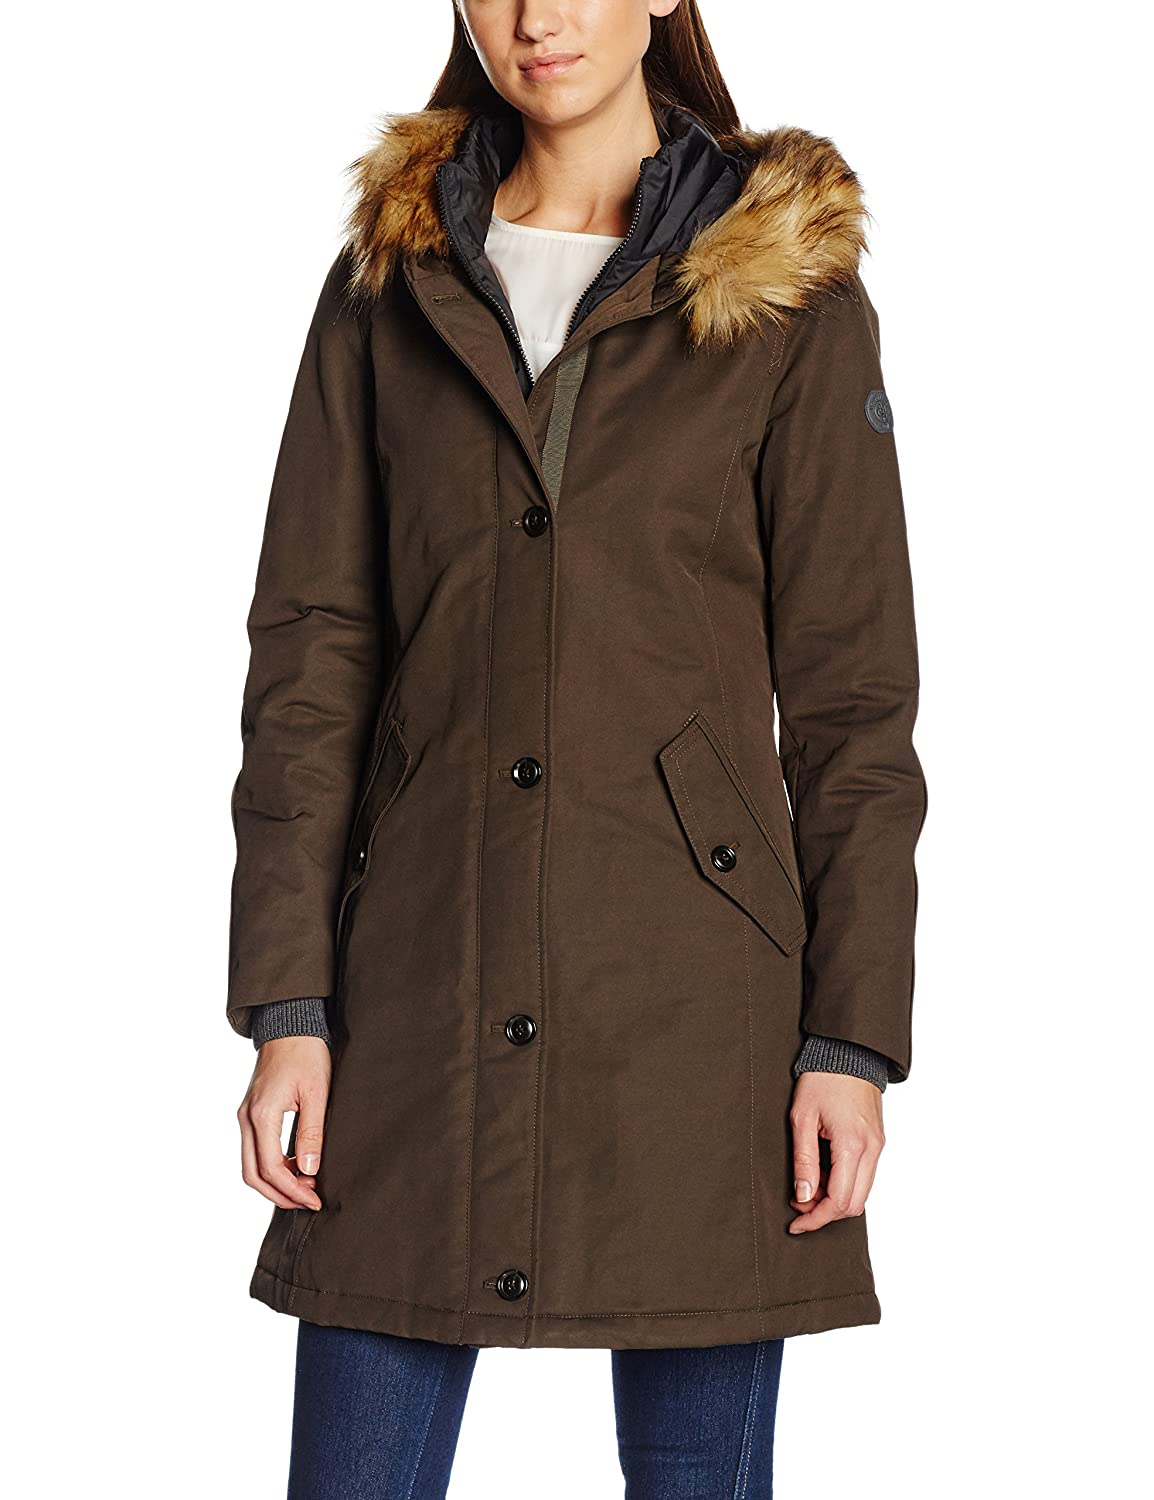 Marc O'Polo Damen Jacke 608015971205